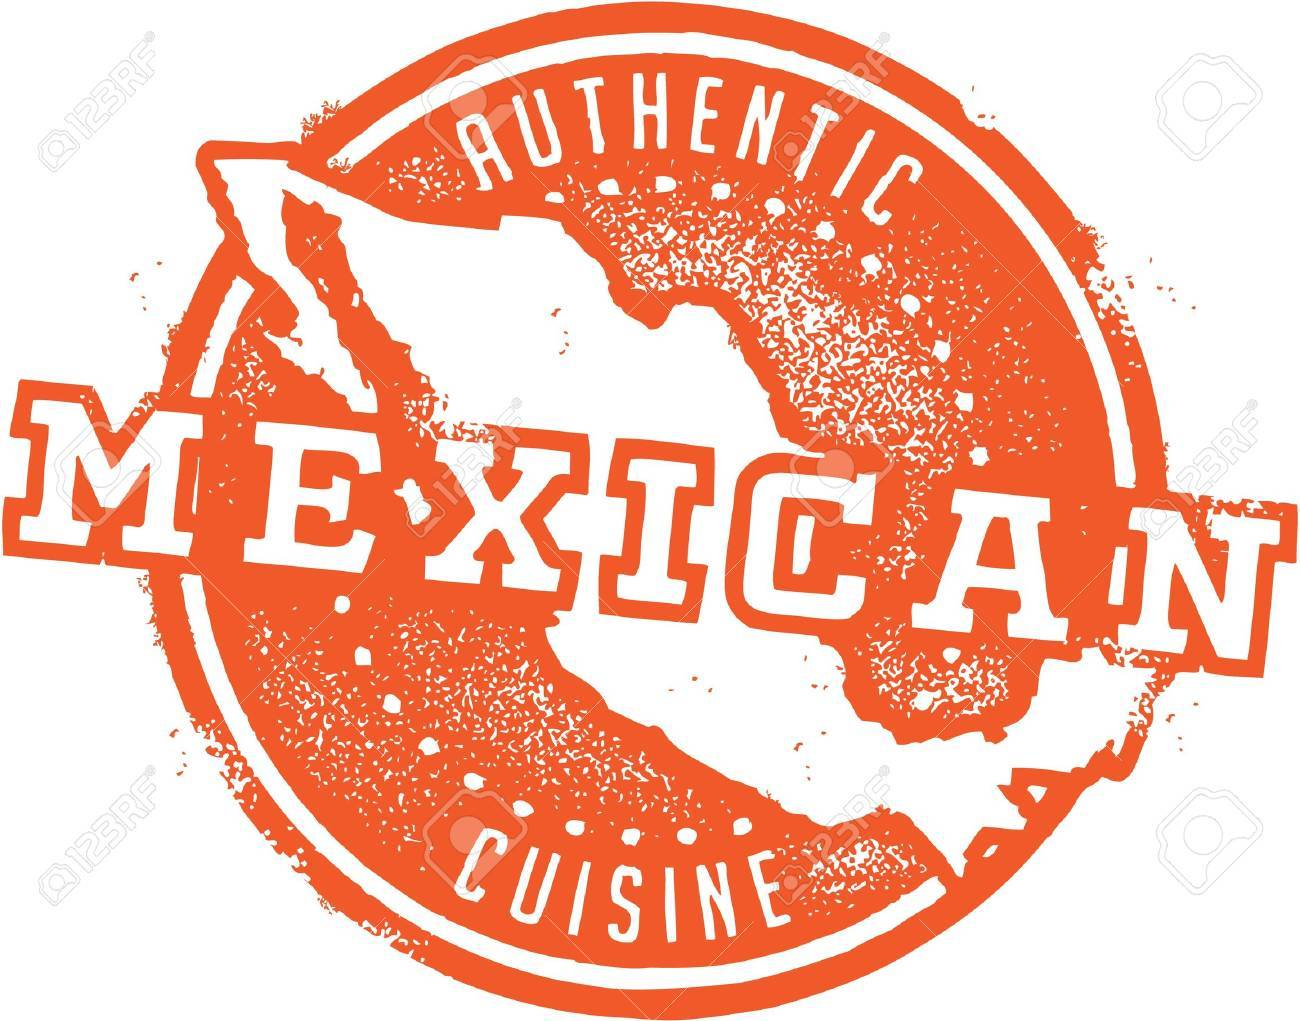 Authentic Mexican Restaurant Stamp Stock Vector - 21386242